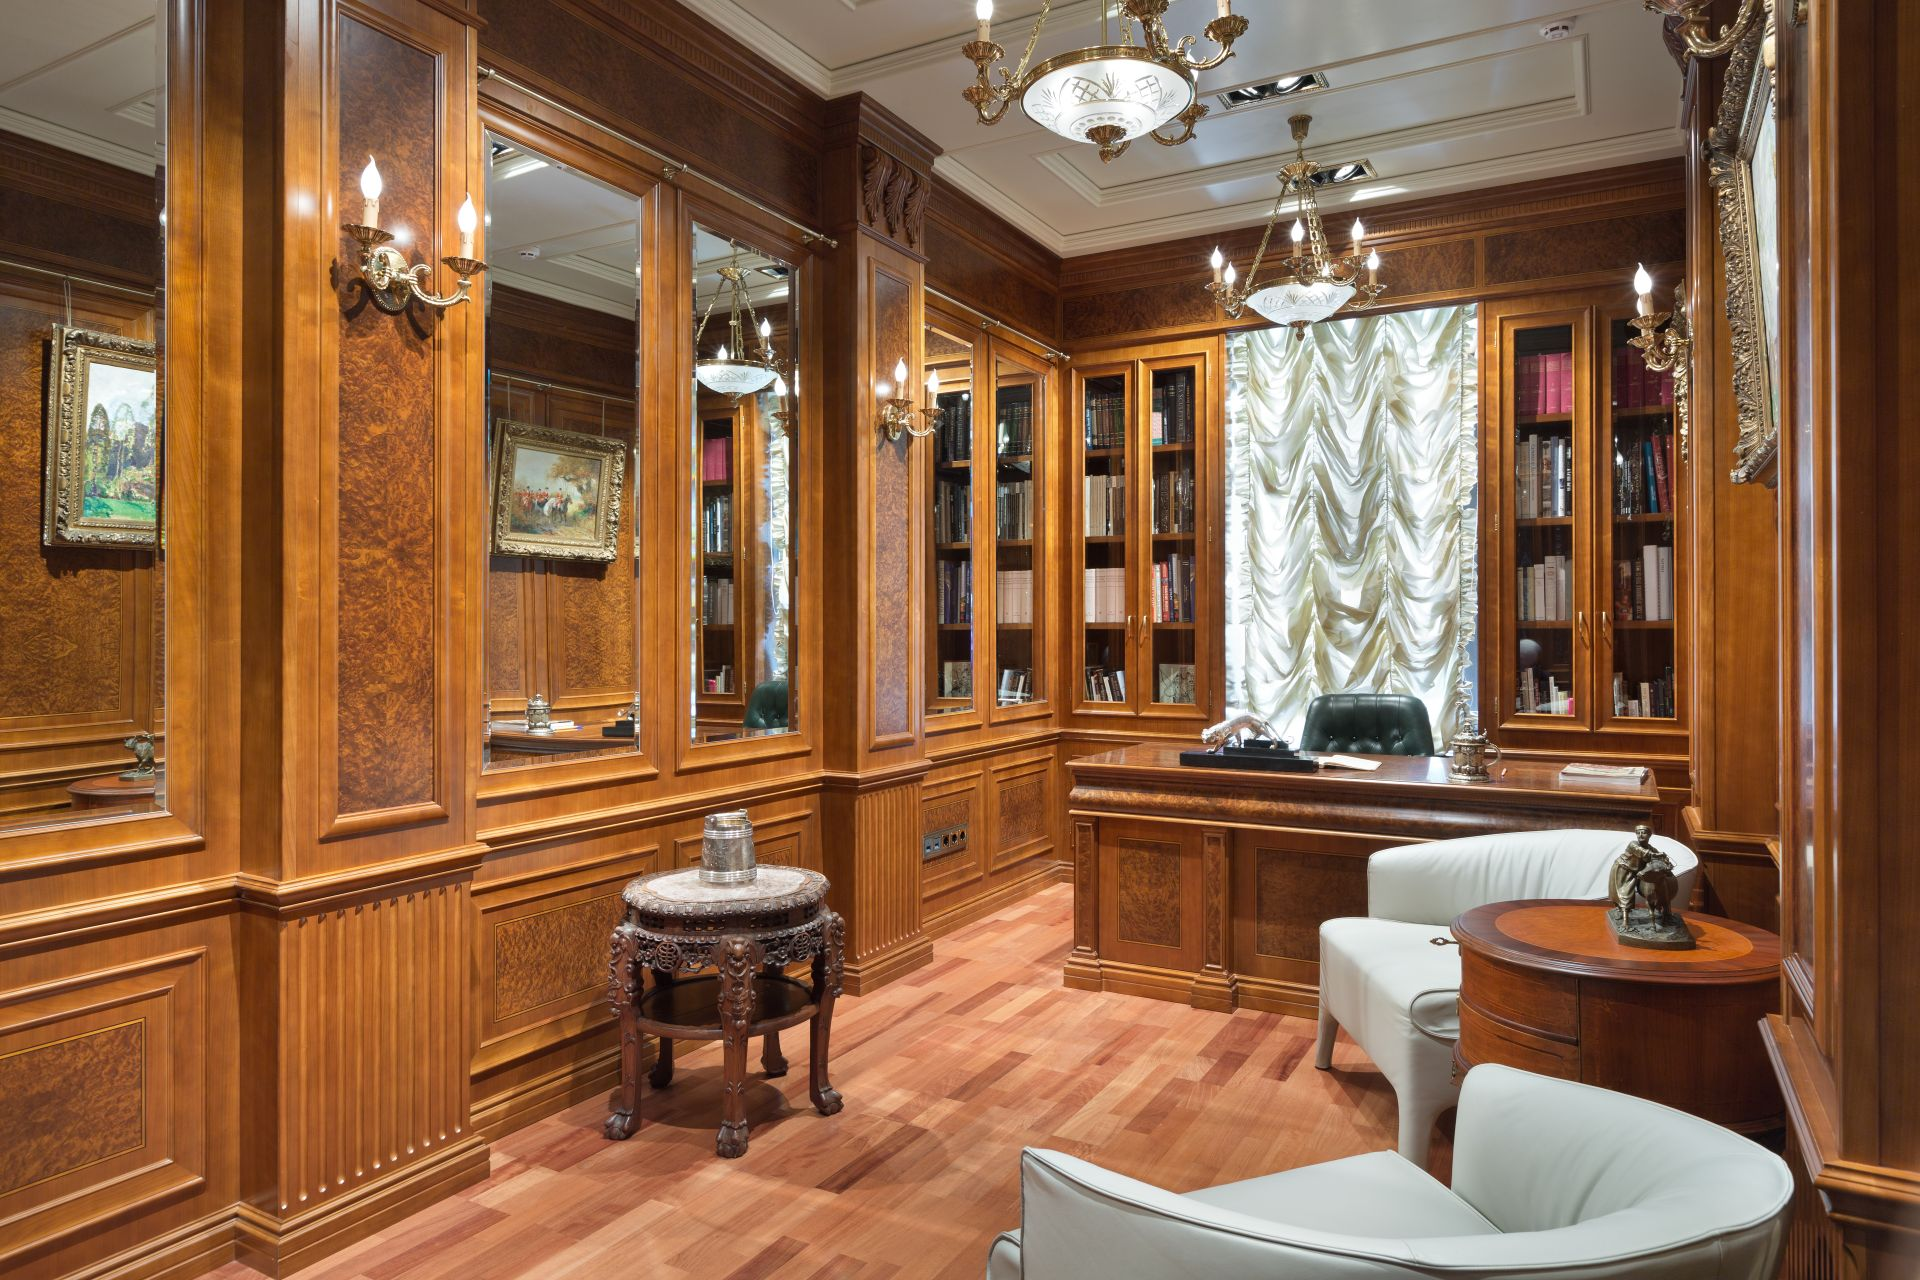 Boiserie production (wall paneling with wood)